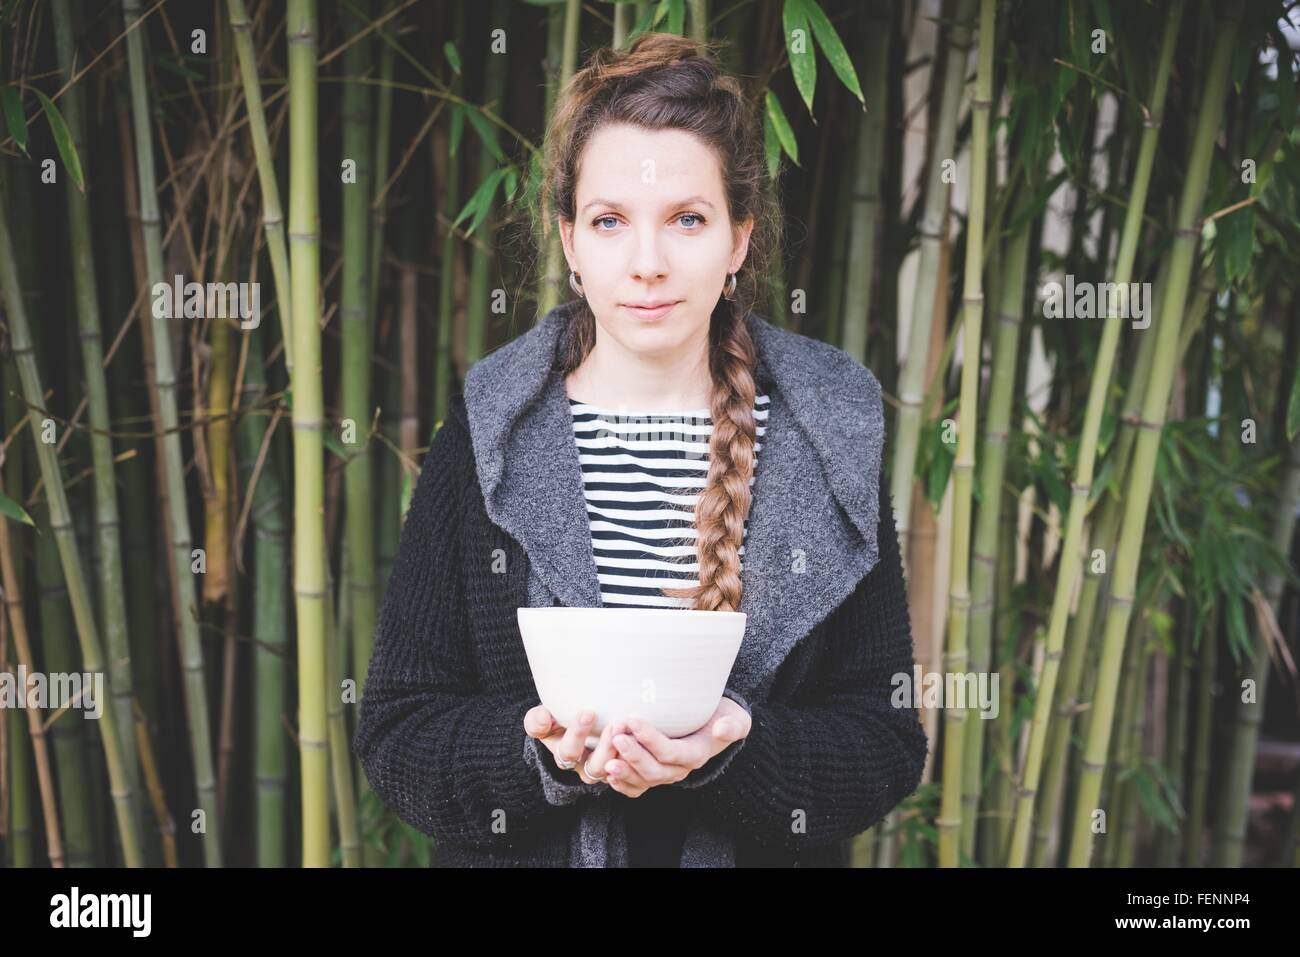 Front view of young woman standing in front of bamboo grove holding ceramic dish looking at camera - Stock Image